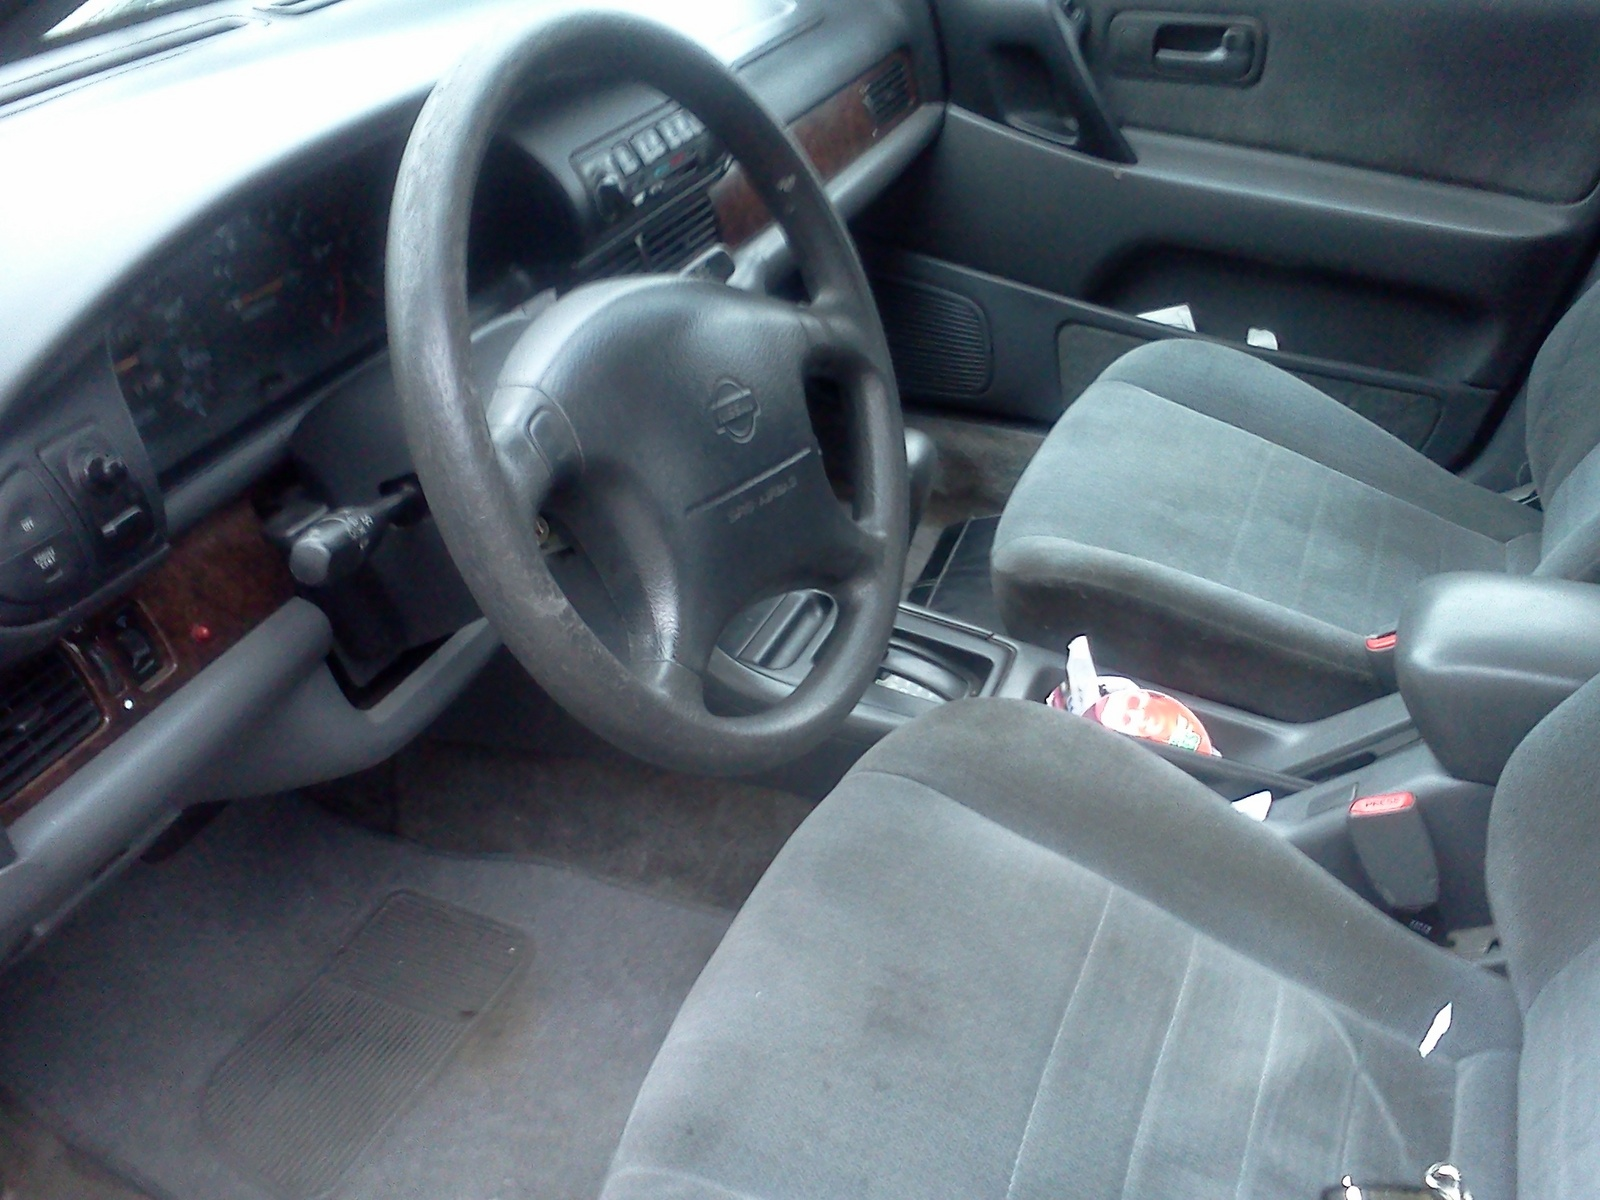 1997 Nissan Altima GXE, SAVE GAS, interior